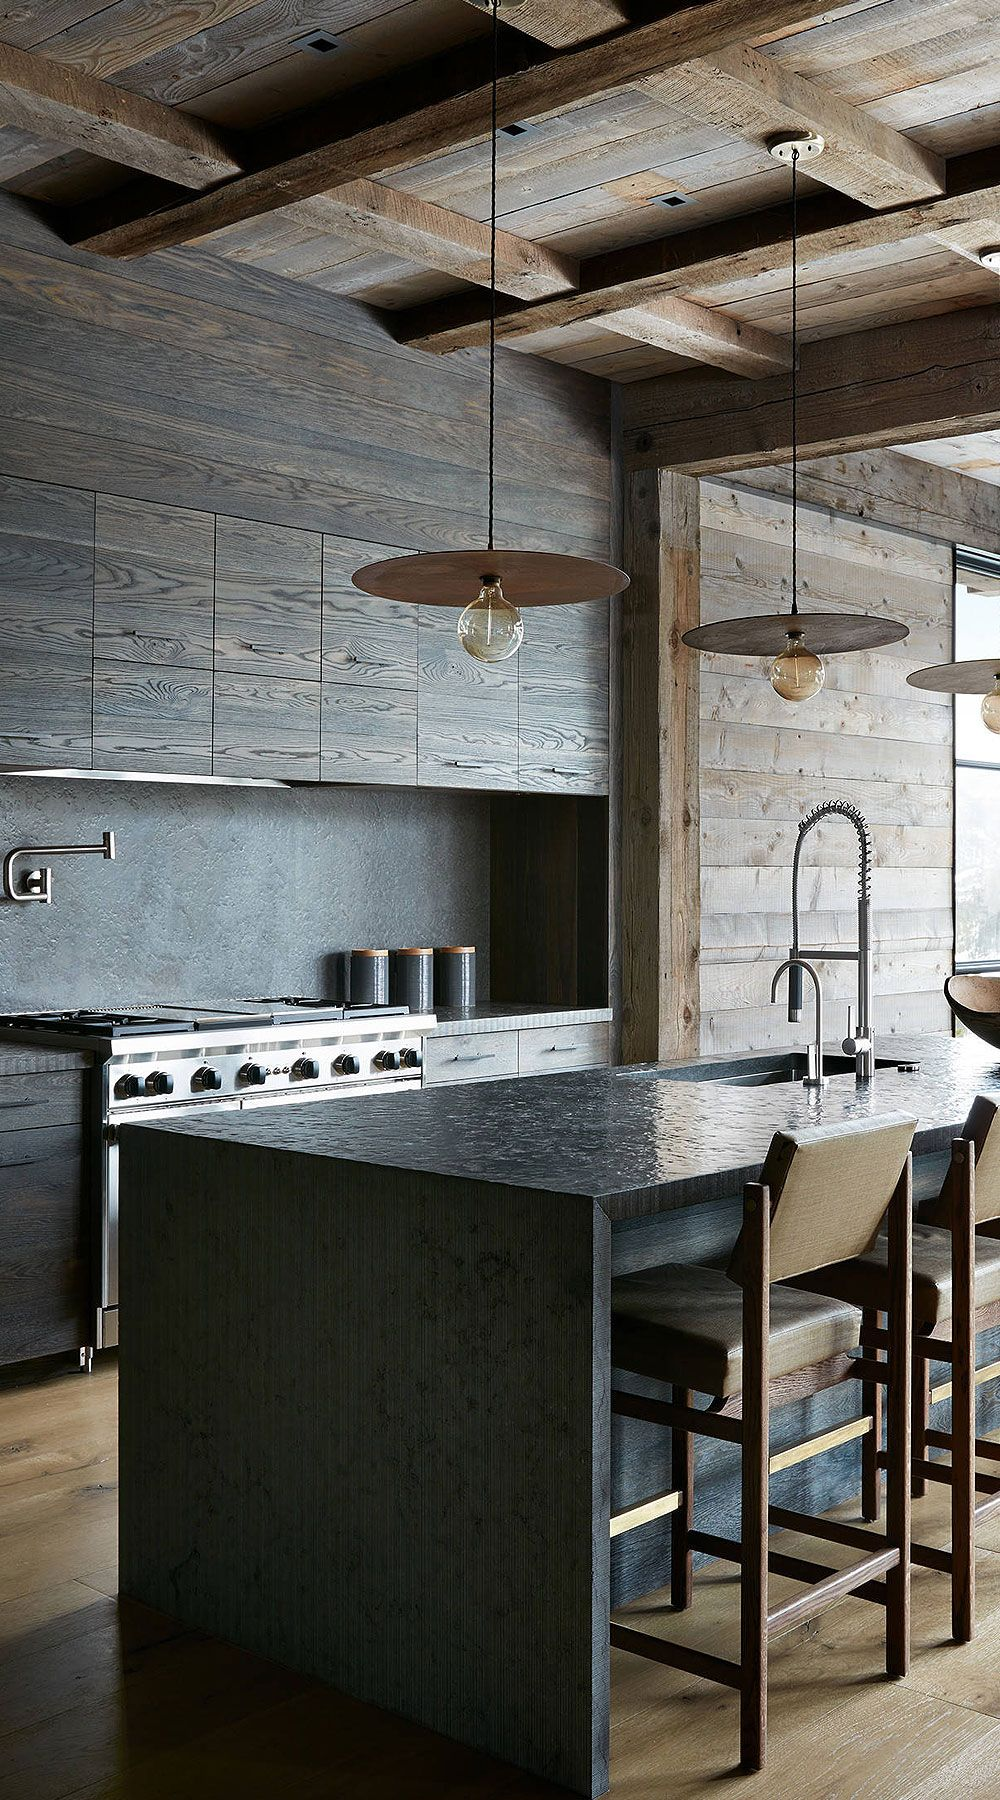 50+ Black Countertop Backsplash Ideas (Tile Designs, Tips ... on Backsplash Ideas For Black Countertops  id=57756